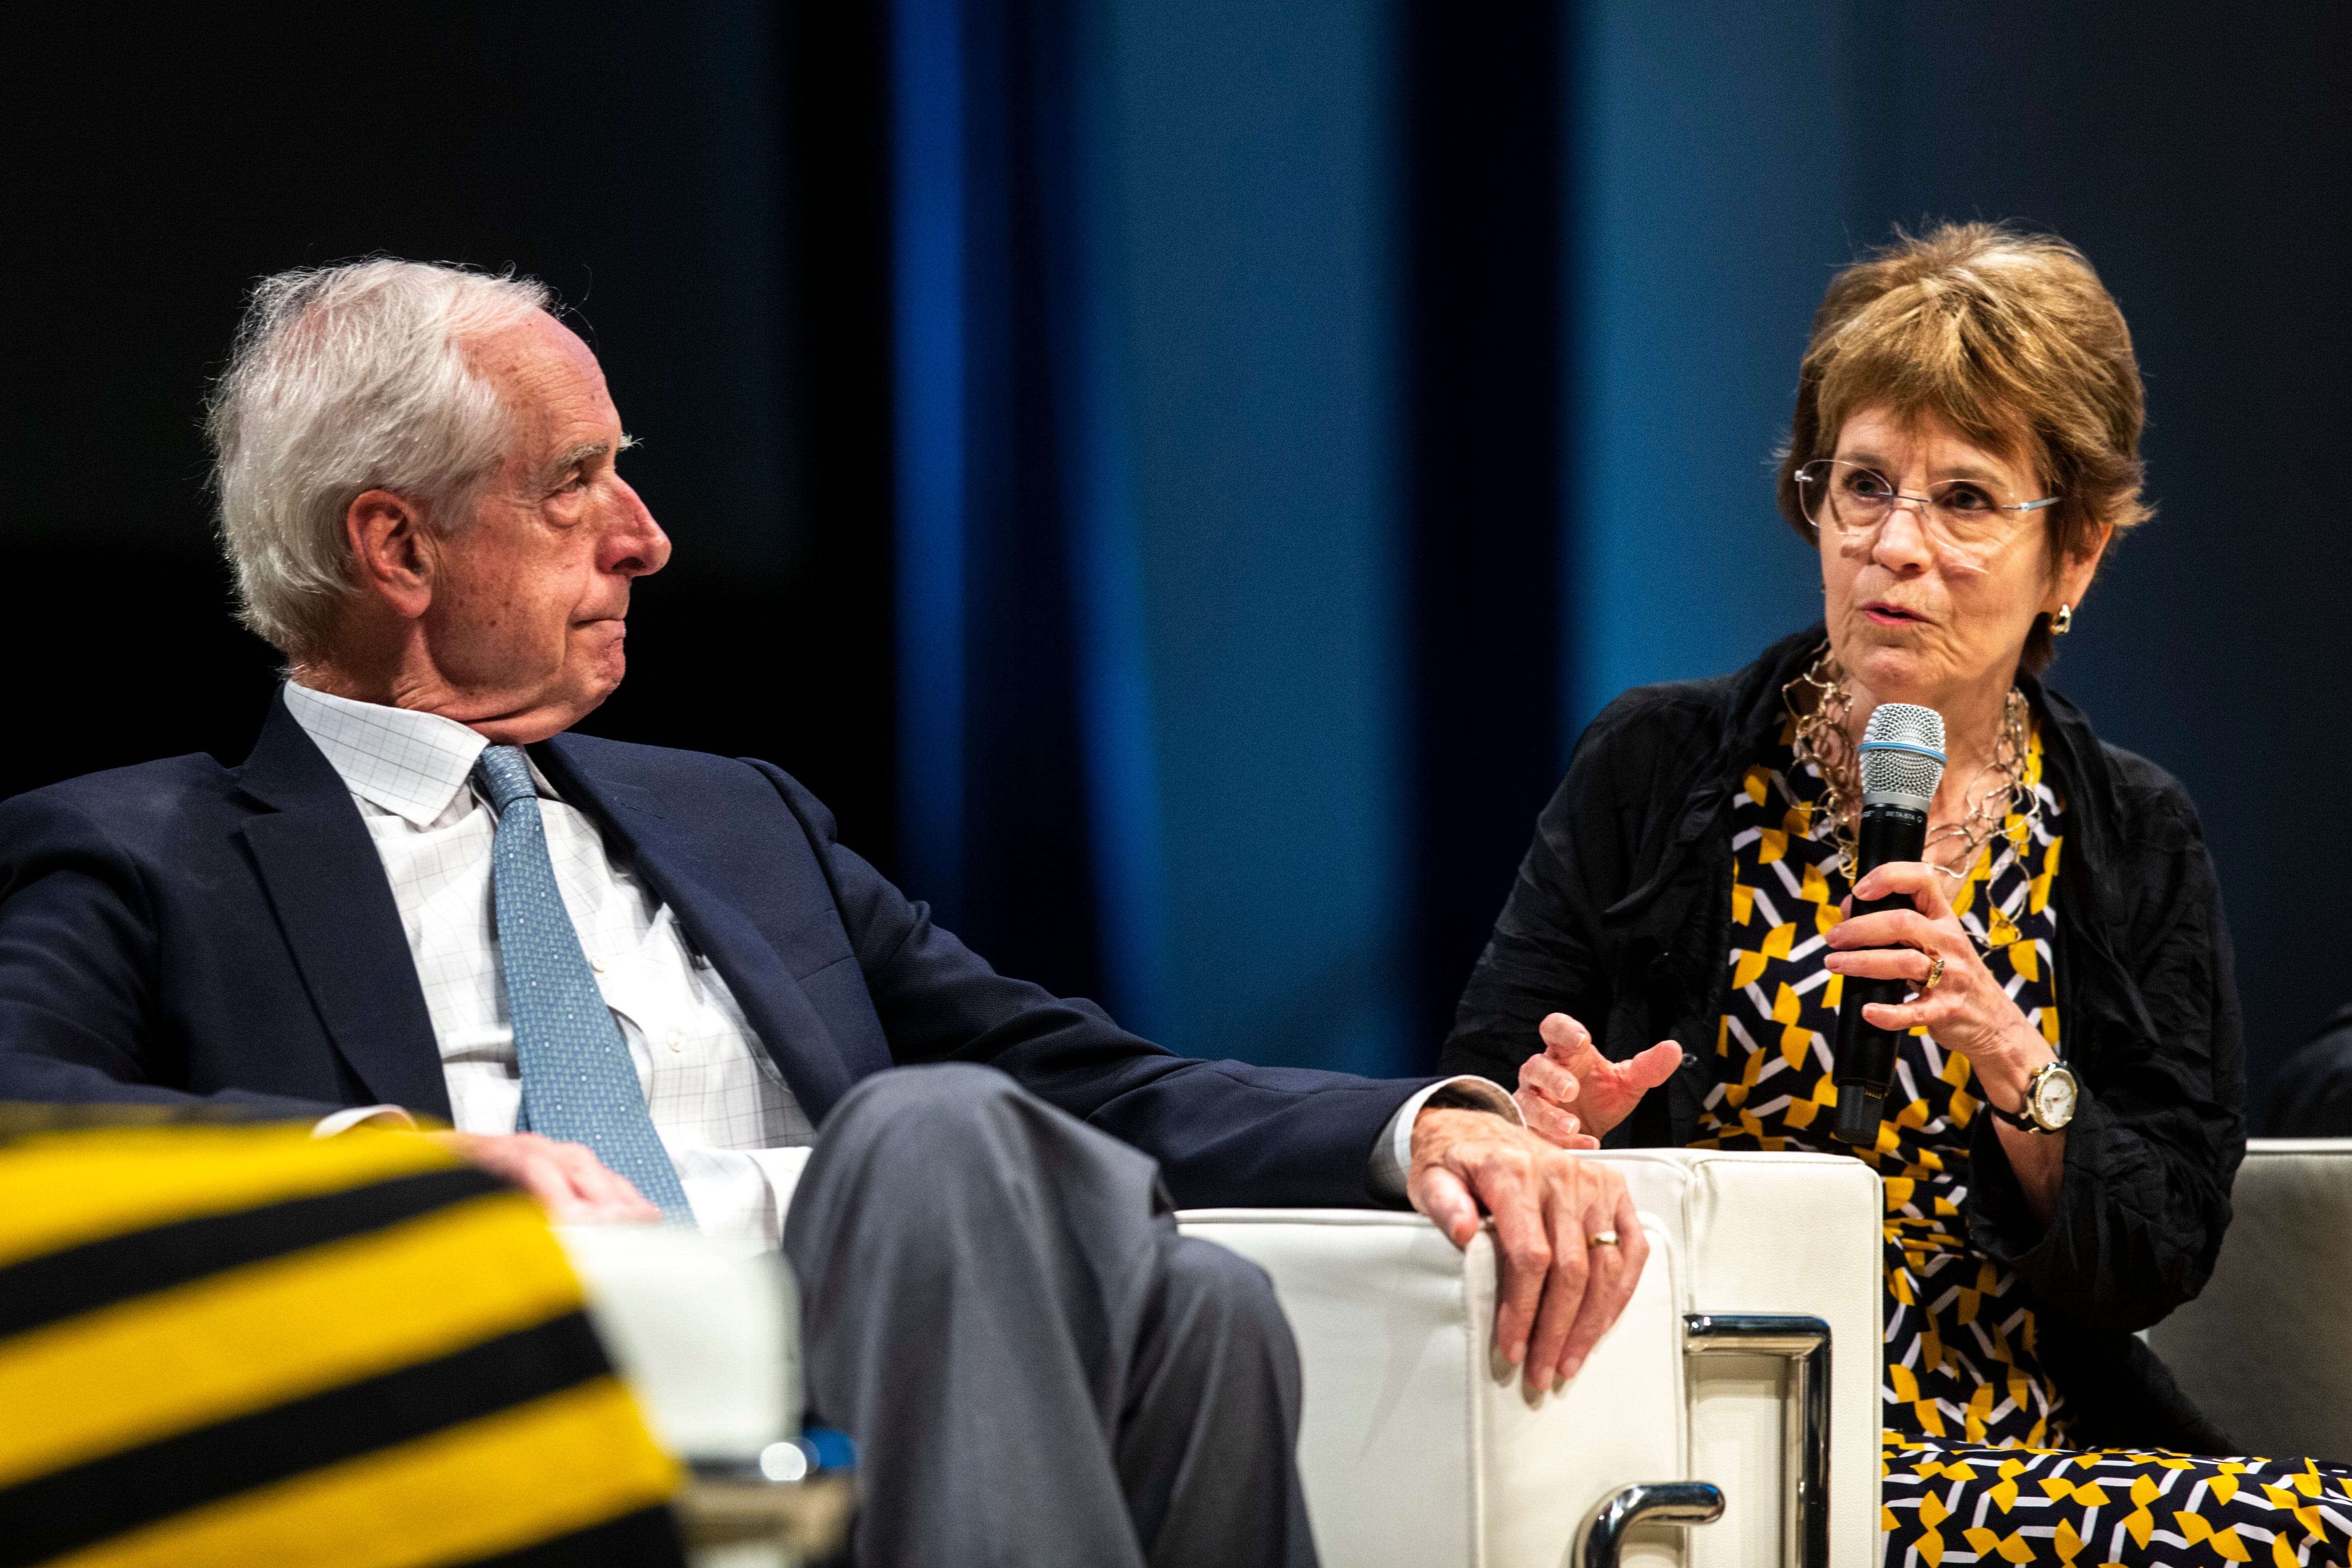 Improved, but facing more criticism: University of Iowa presidents assess state of campus